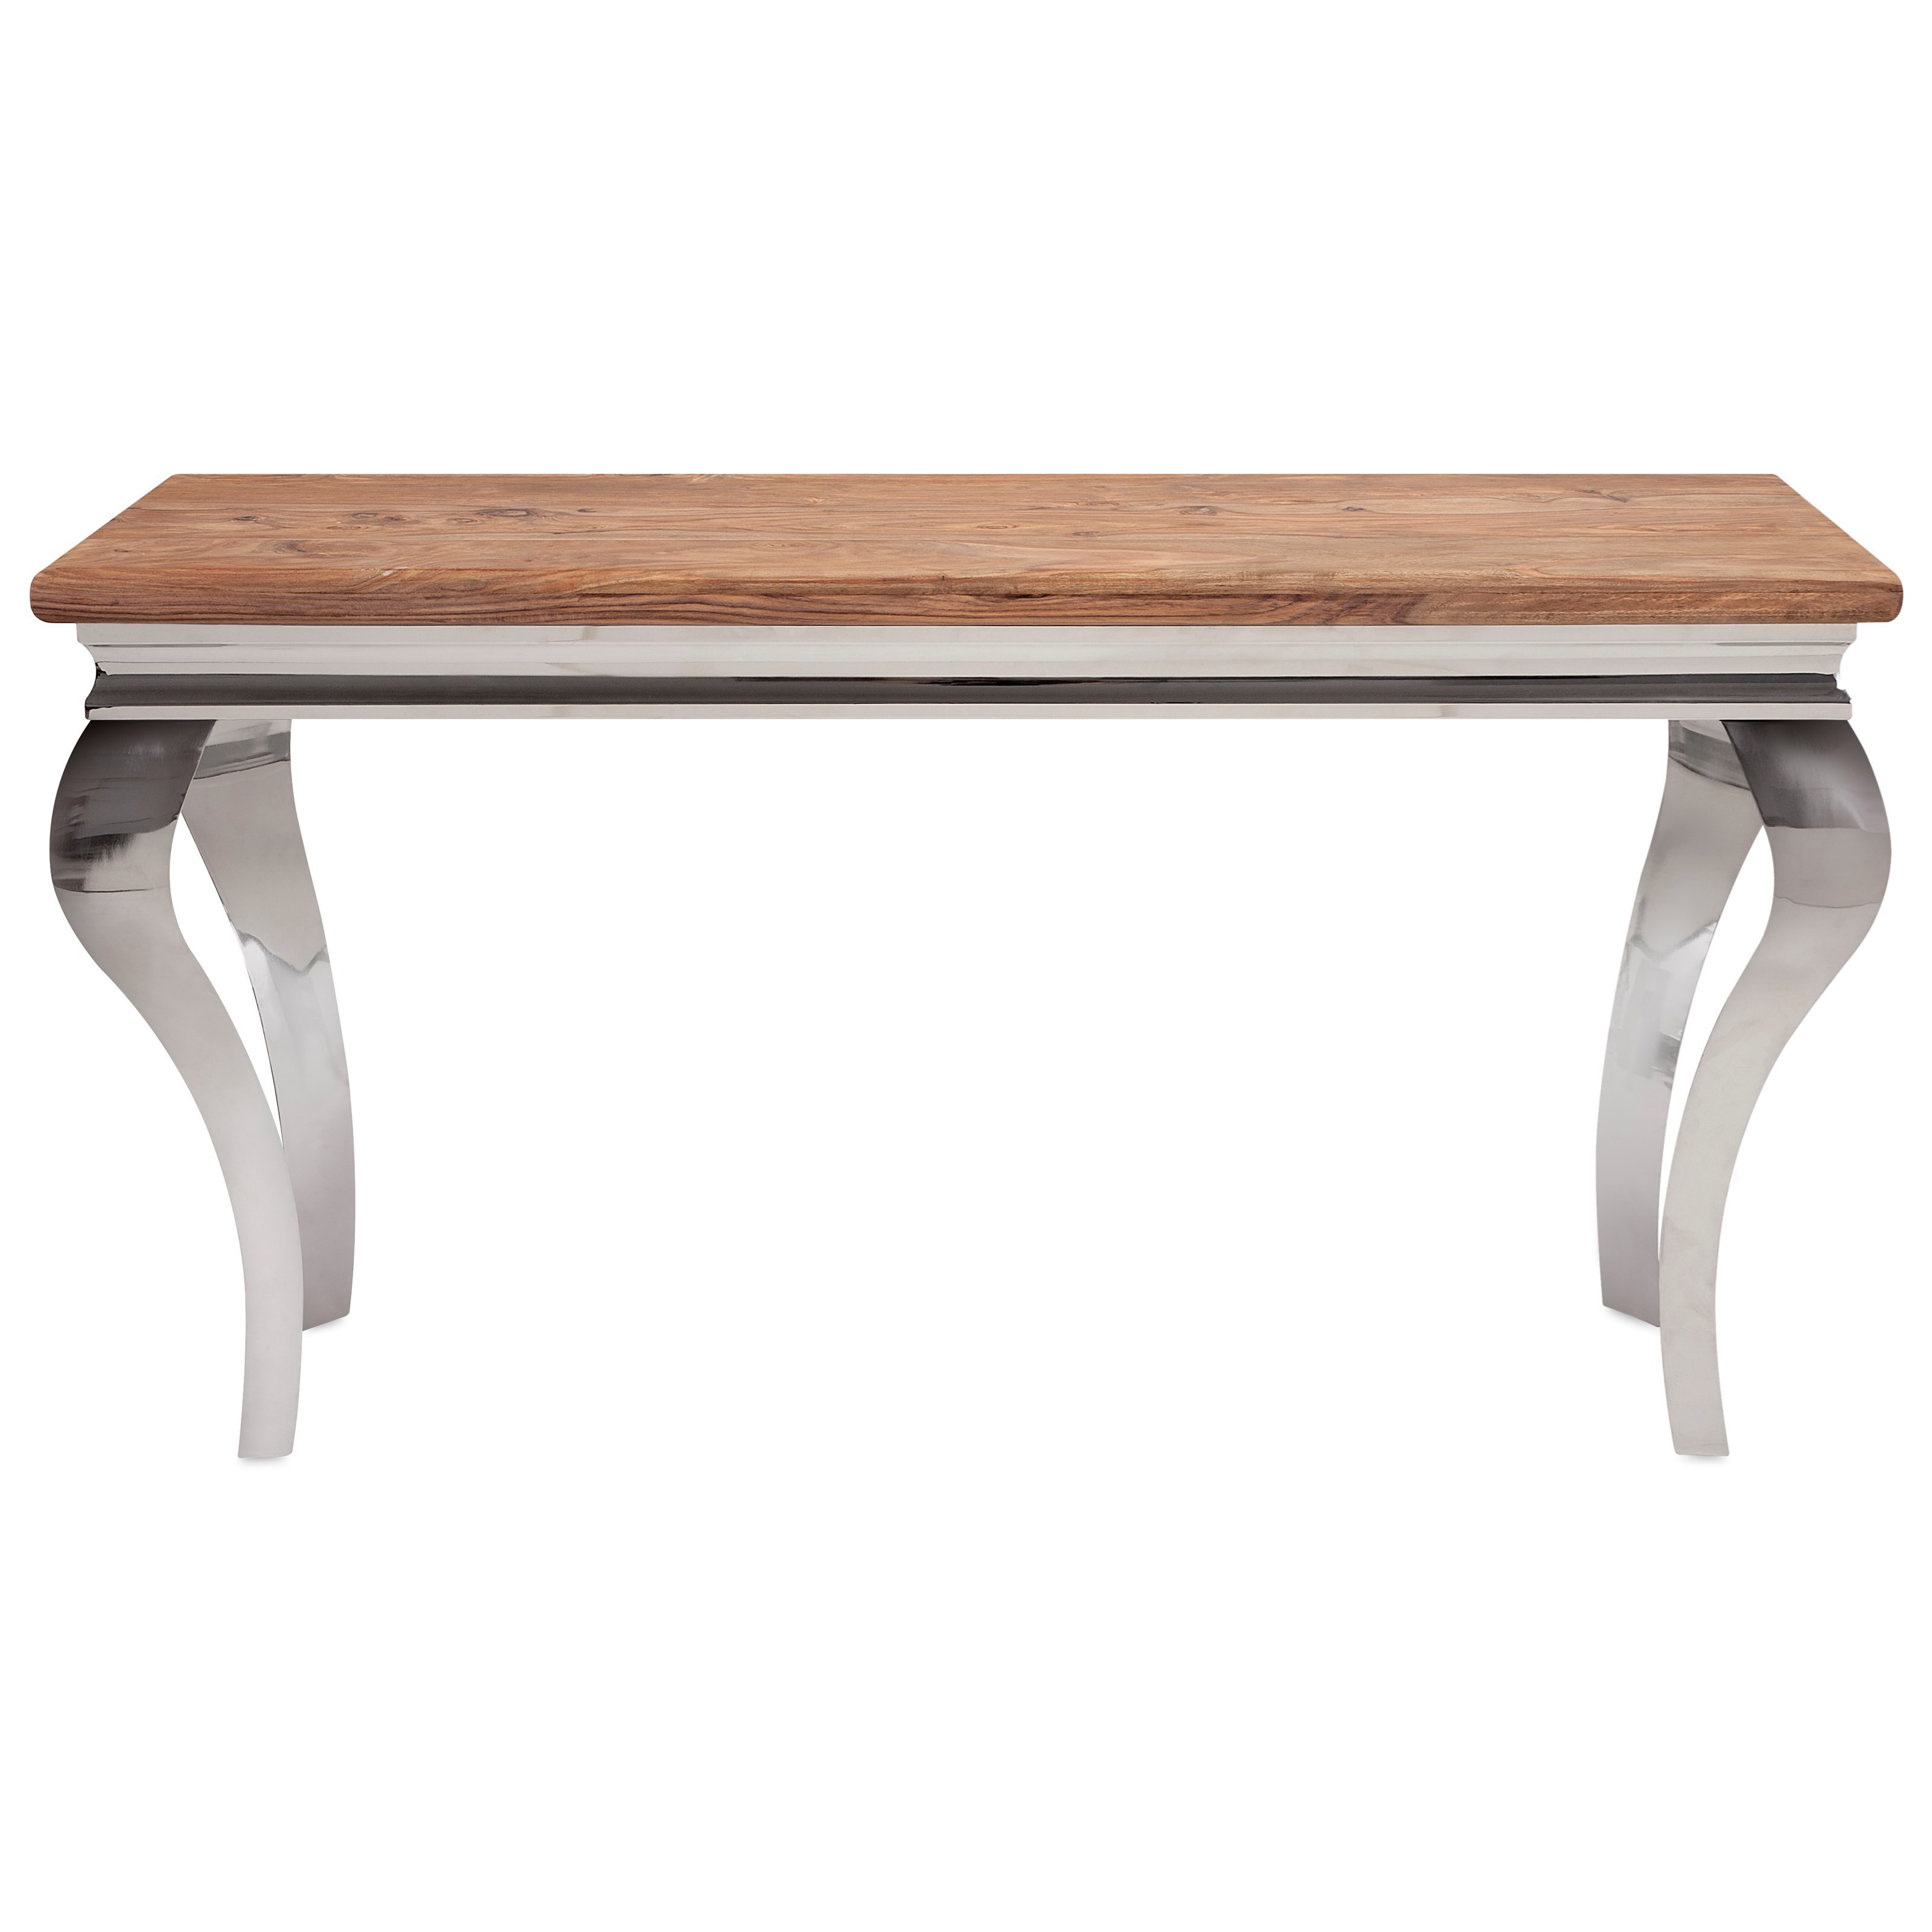 Bailey Stainless and Wood Console